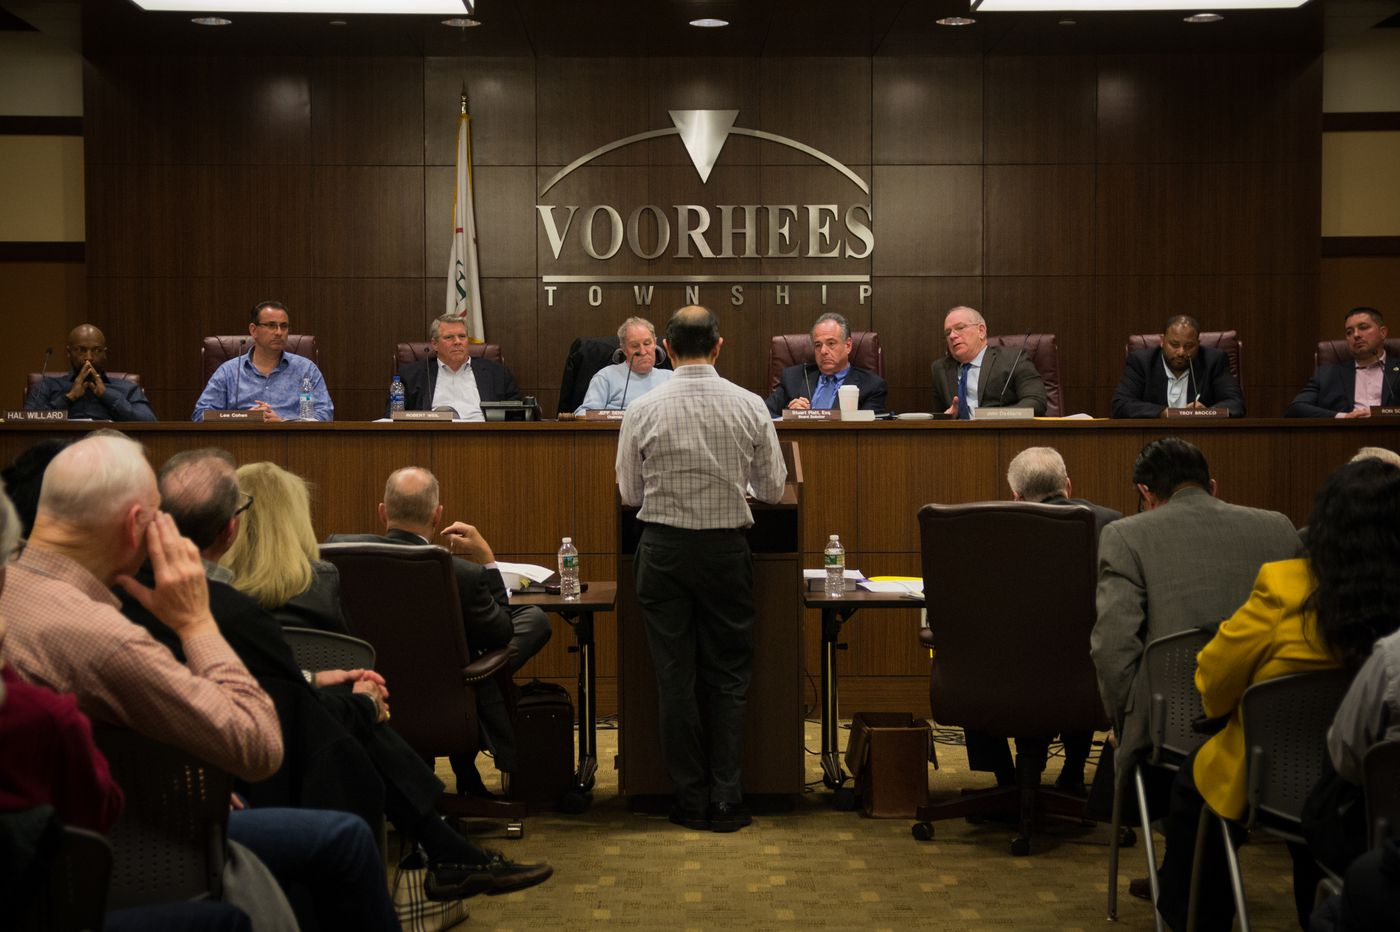 Voorhees residents weigh in on an international 'think tank' for religious peace in their backyard